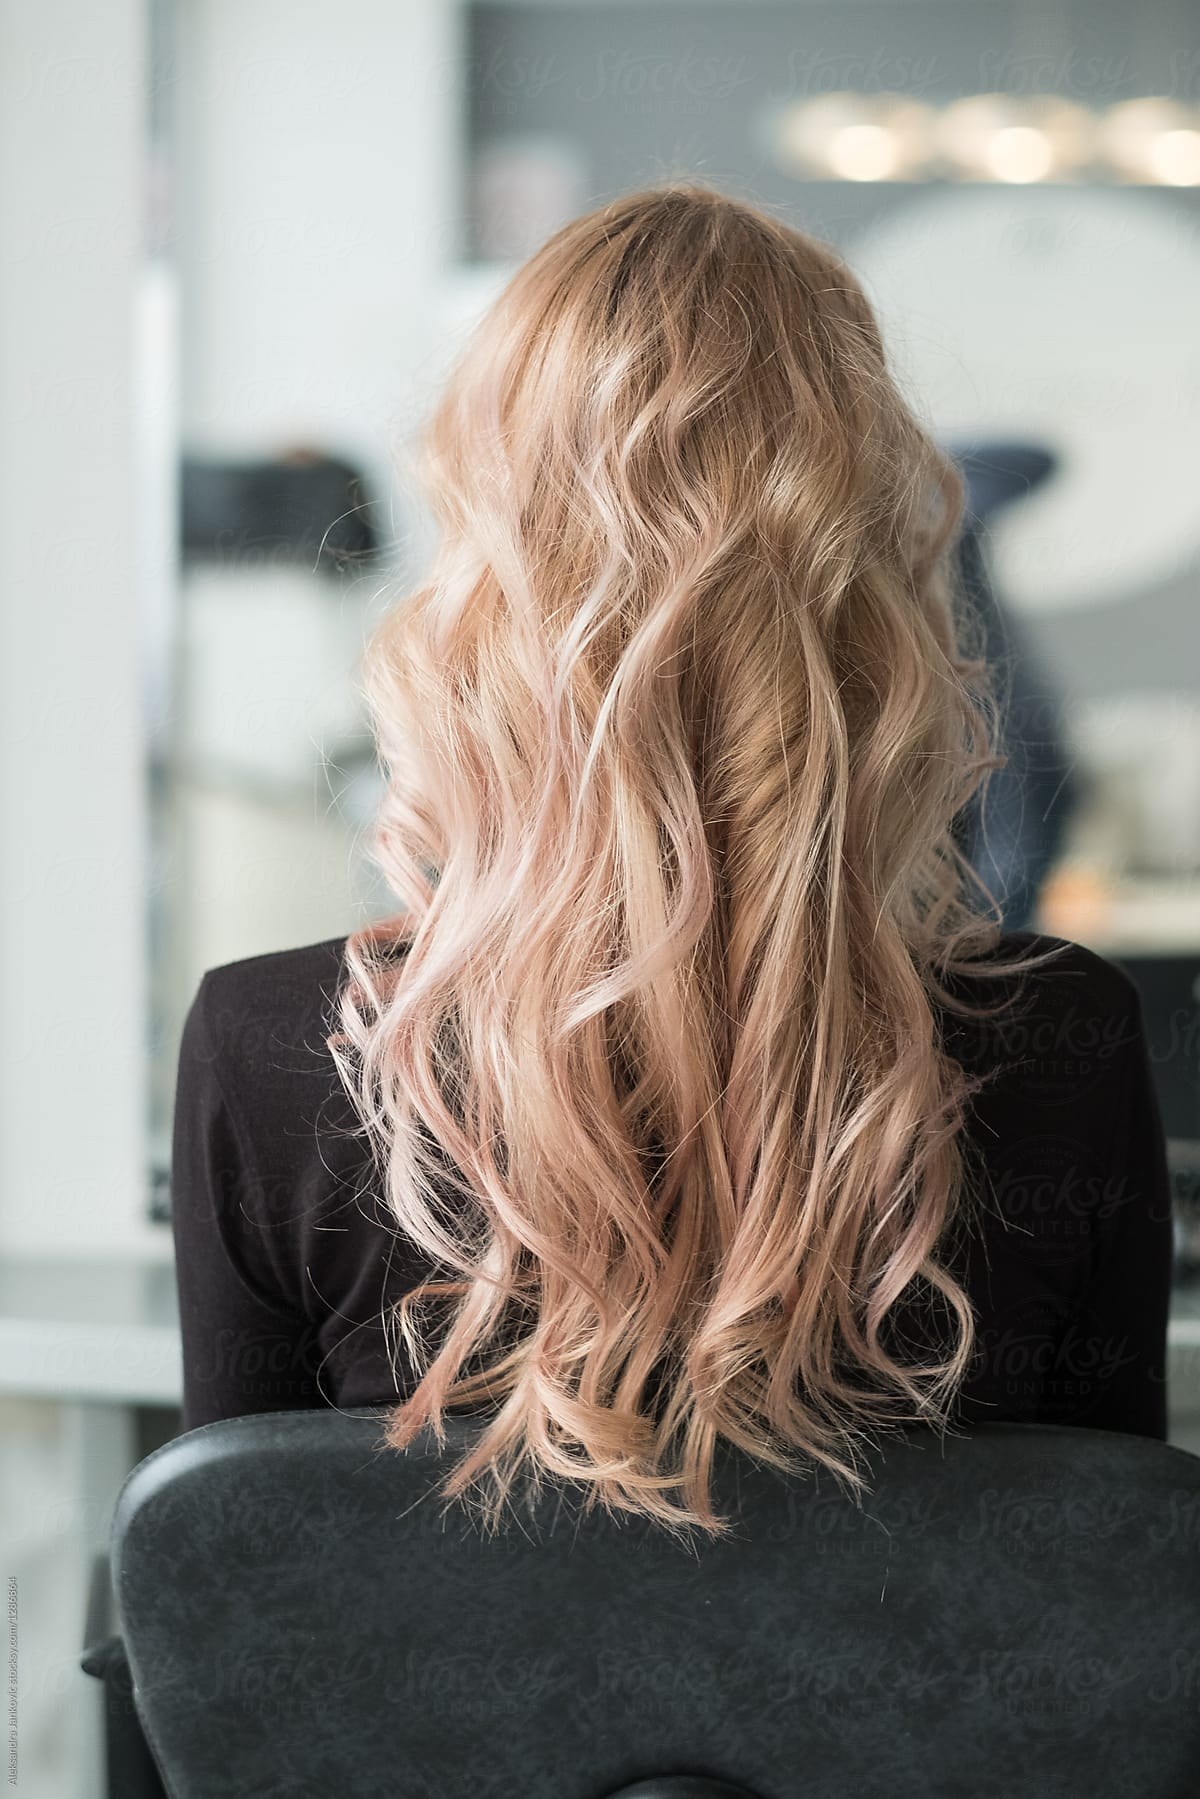 Back View Of Woman With Curly Long Hair Stocksy United